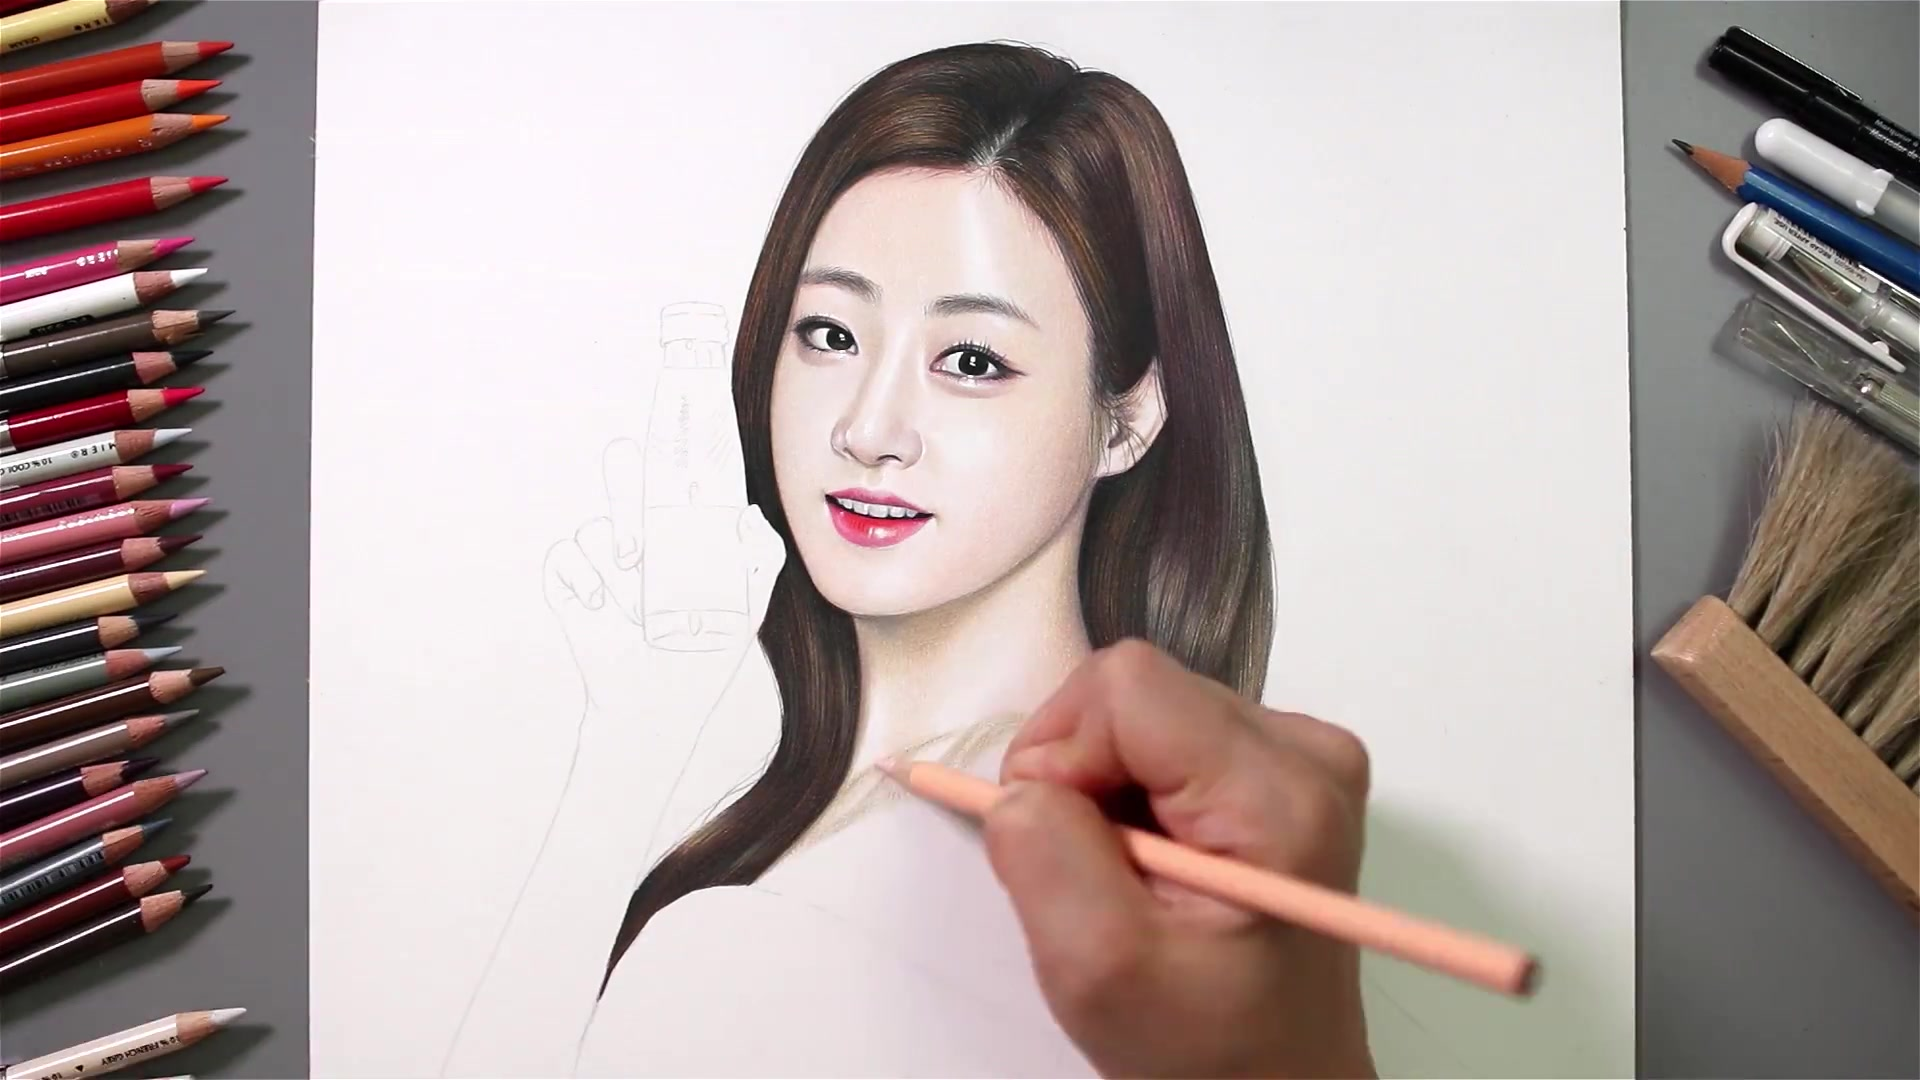 Drawing Hands Episode 51: Speed Drawing Kang Sora of Miero Fiber CF